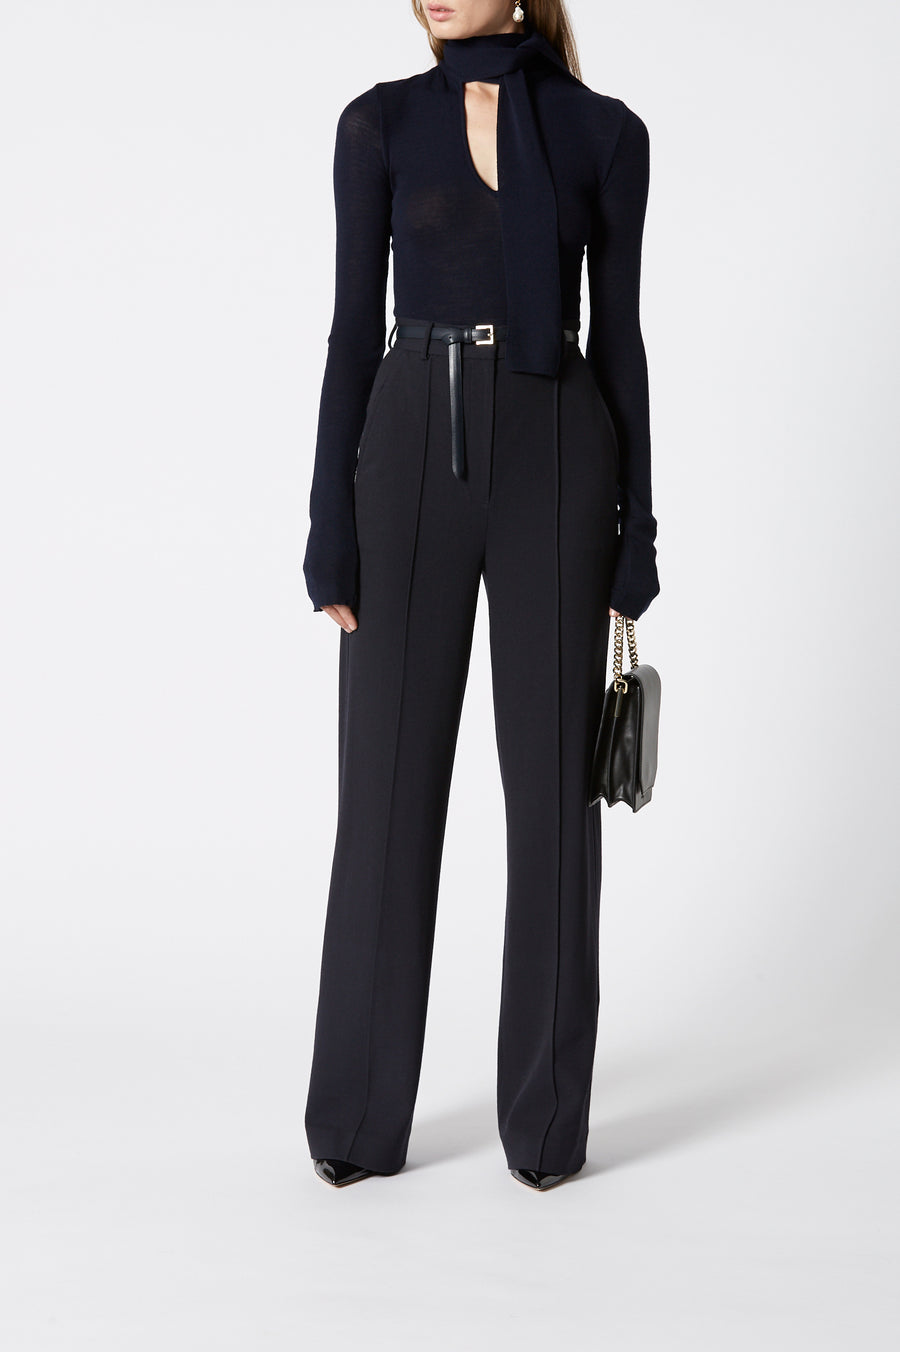 Twill Wool Trouser, tailored trouser, high waist, zip and button fastening, belt loops, pressed creases through the front, wide-leg silhouette, Color Navy